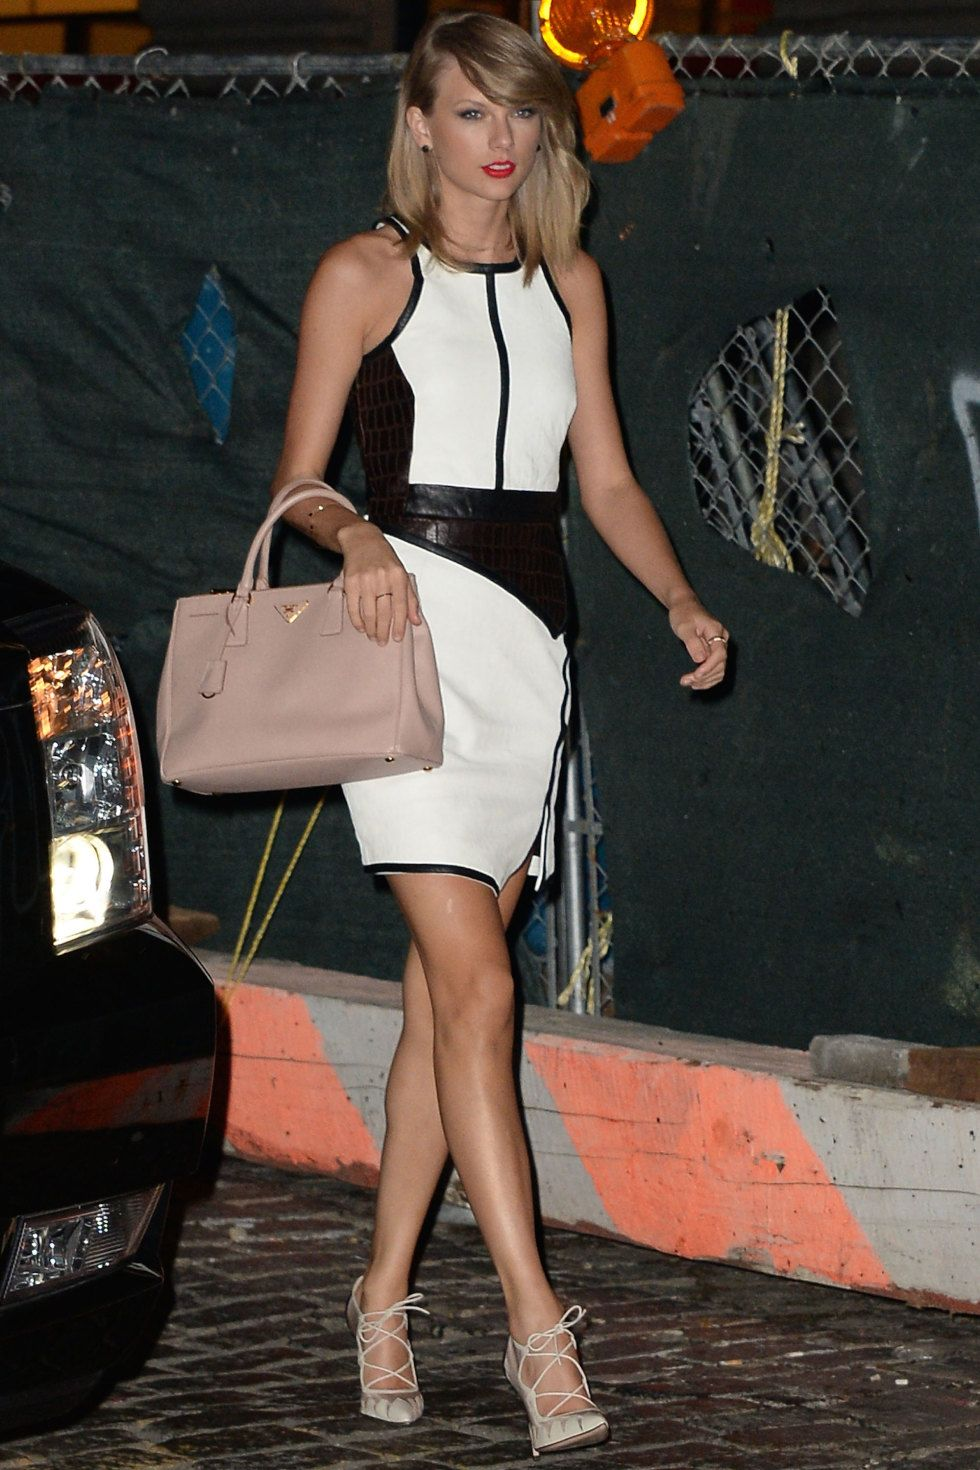 In New York City on August 13, 2014.